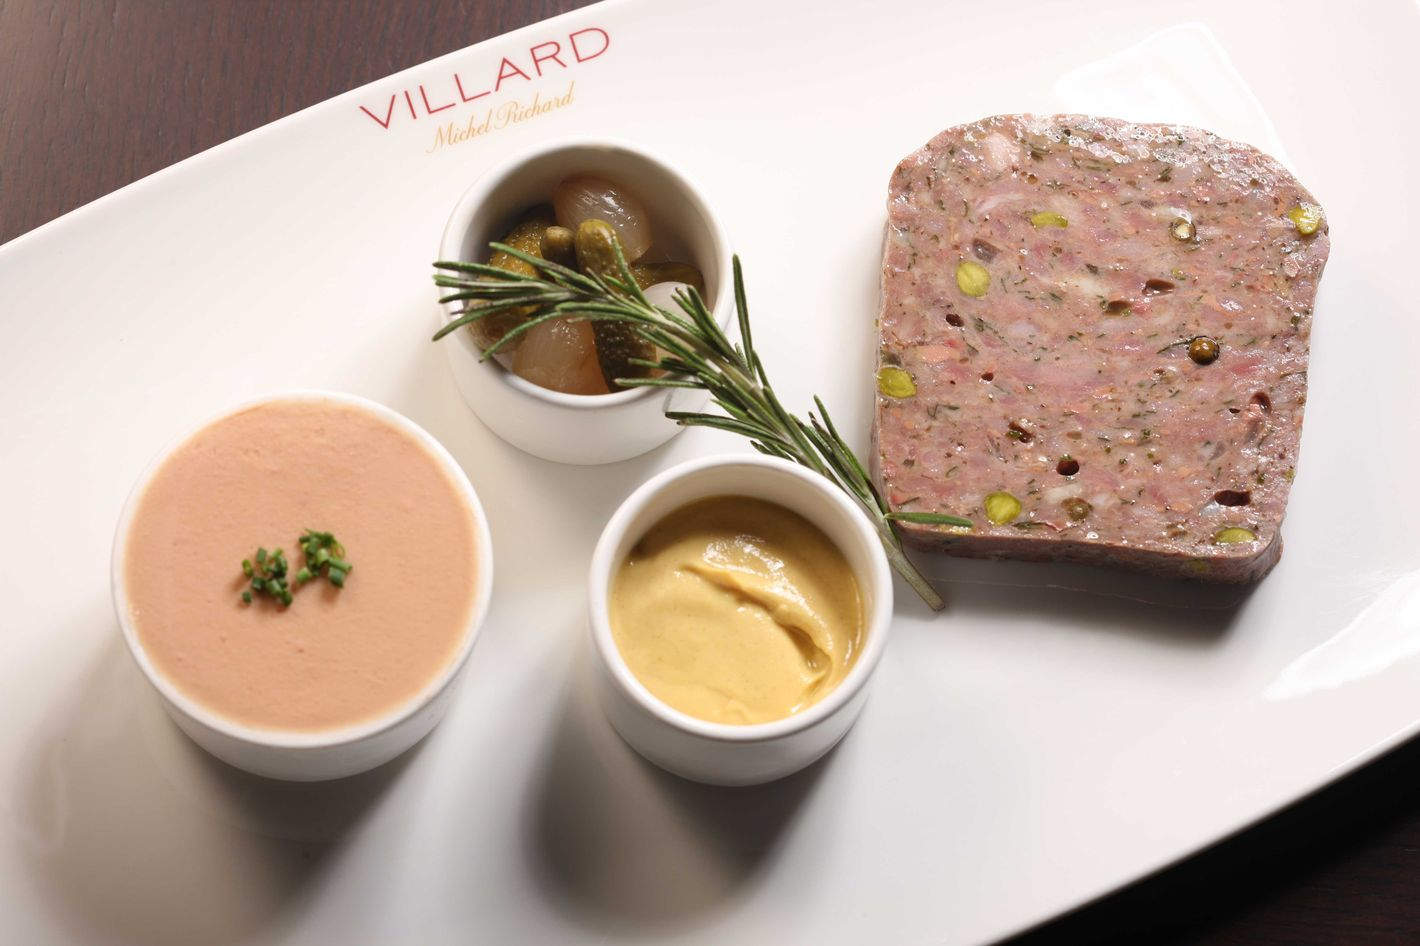 """""""If Villard Michel Richard doesn't make it as a restaurant, it could reopen as the Museum of Unappetizing Brown Sauces."""""""